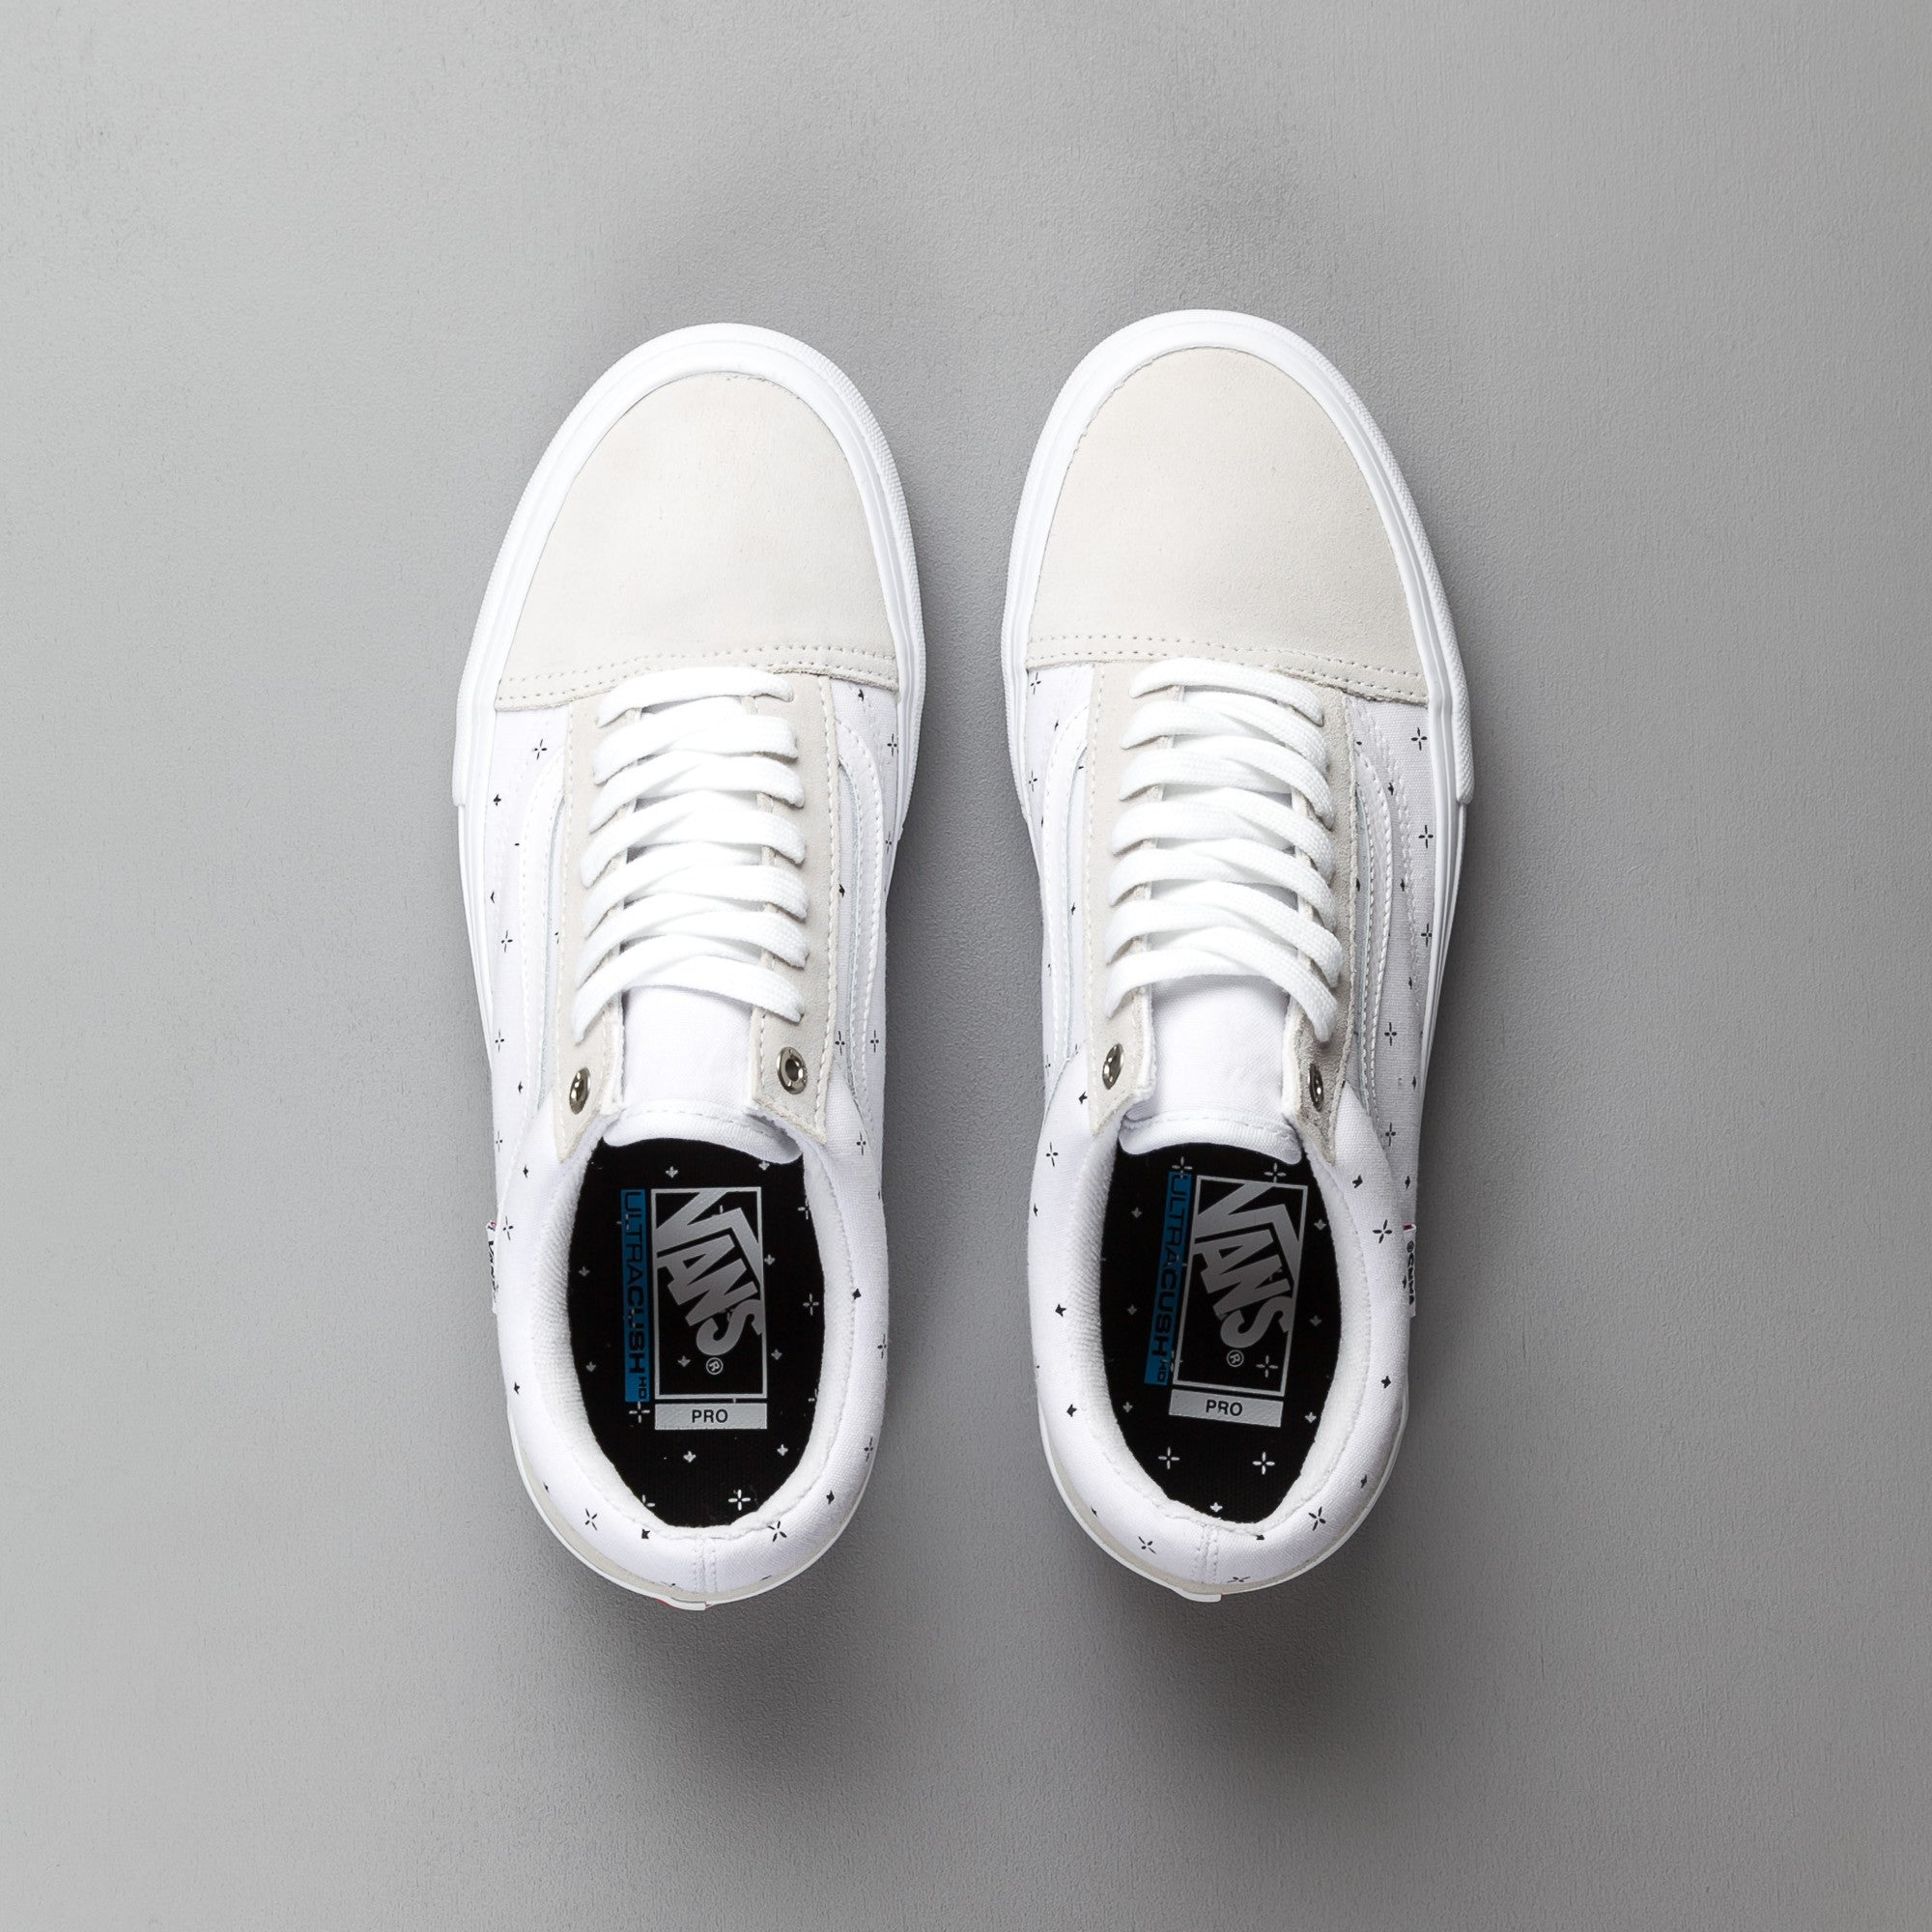 Vans Old Skool Pro Shoes - (Bandana) White